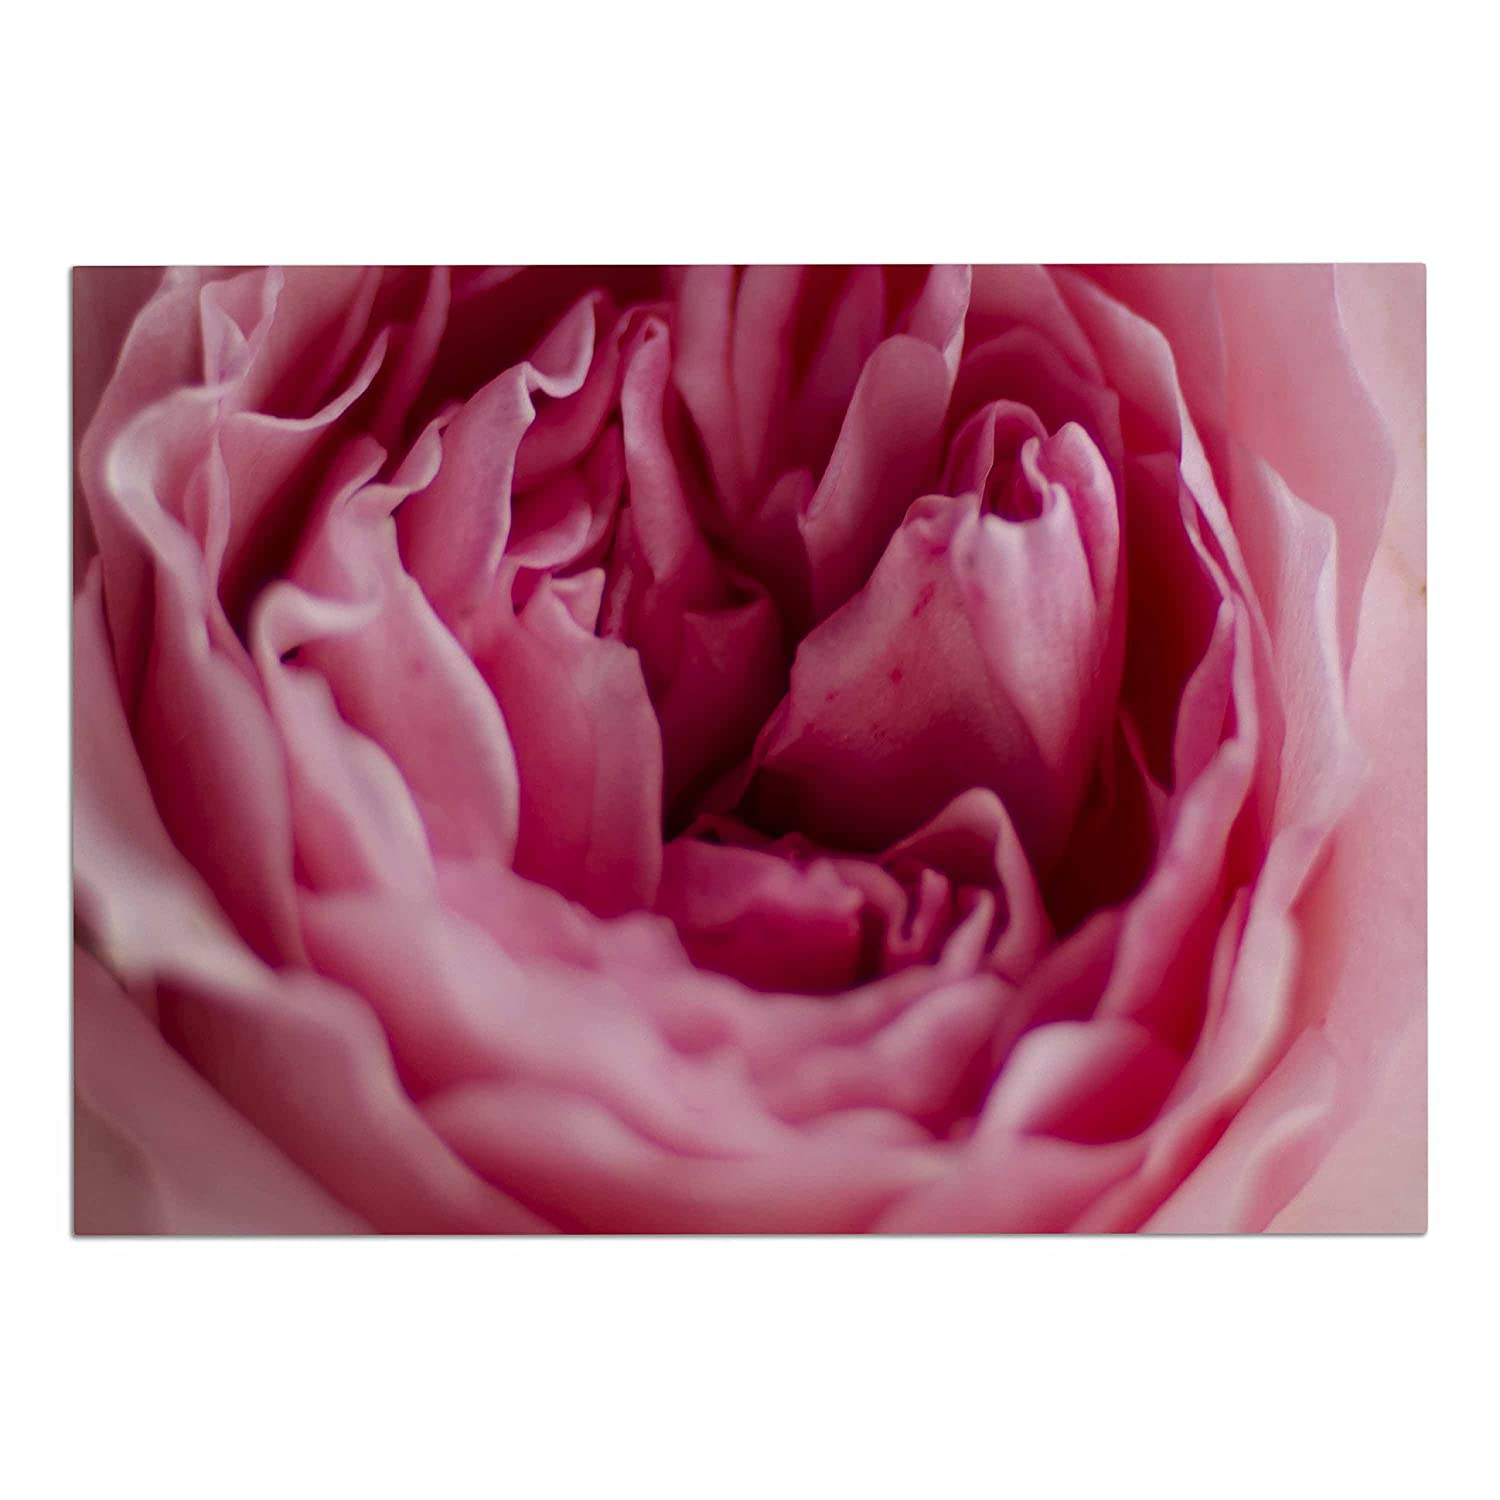 KESS InHouse Cristina Mitchell Row of pinks Pink bluee Floral Photography Dog Place Mat, 24  x 15